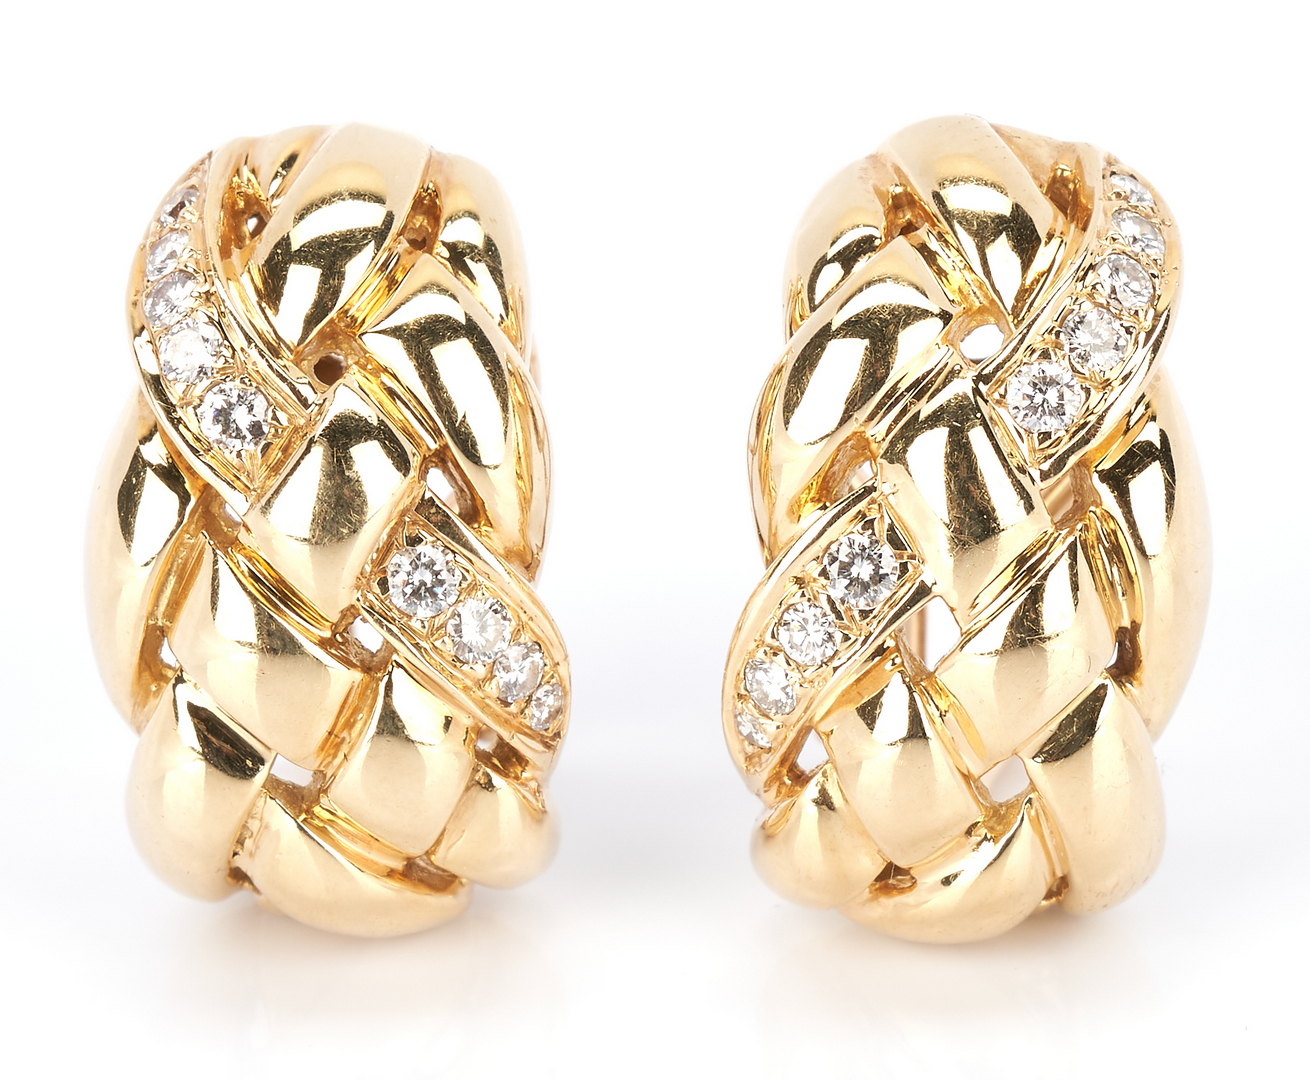 Lot 793: Ladies 14K Gold and Diamond Earrings